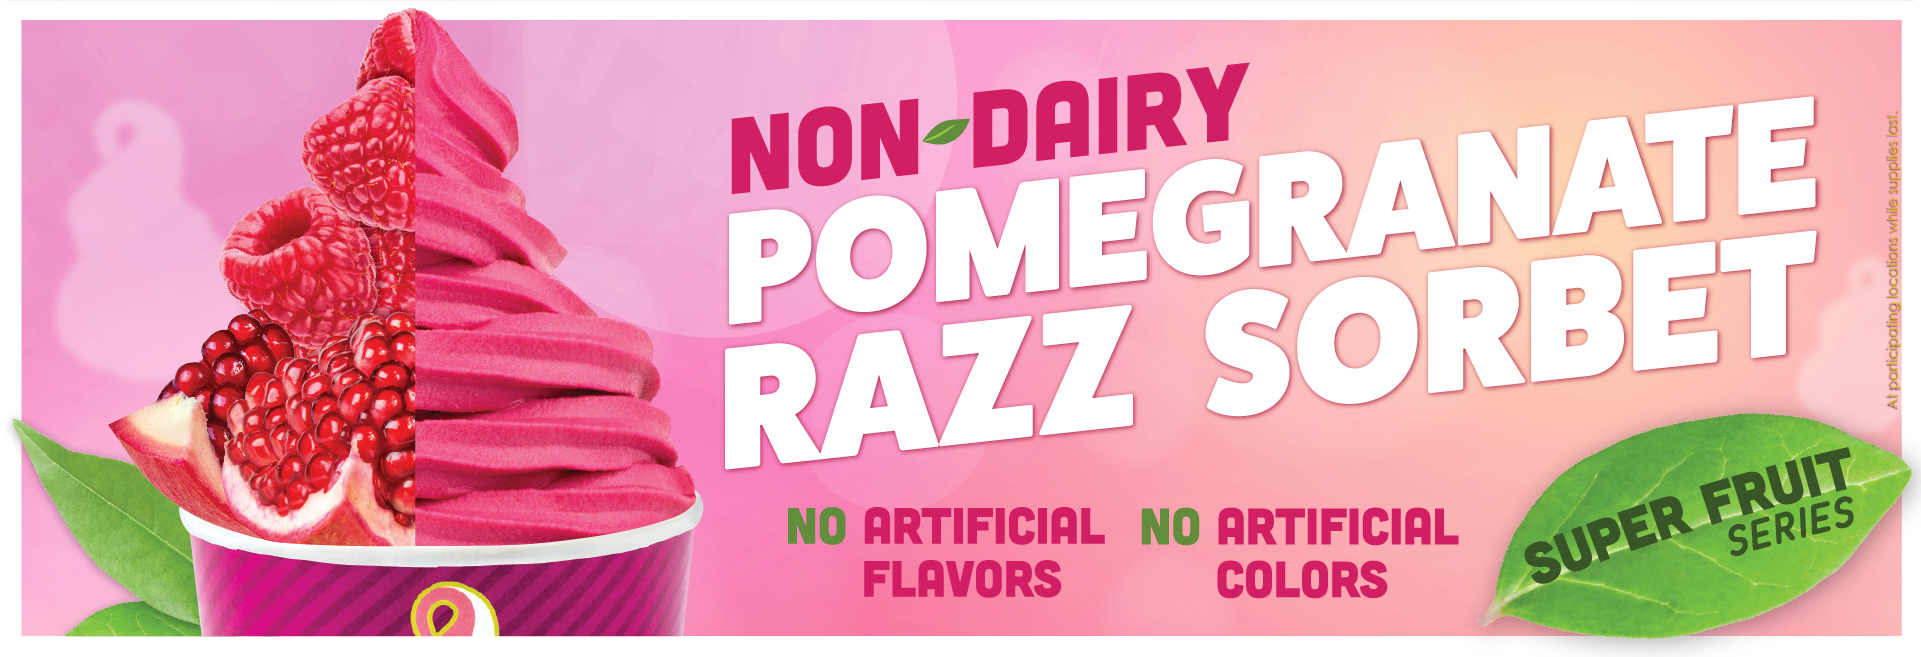 Pomegranate Razz Sorbet. We took a delicious sorbet favorite and made it even better. Our new Pom Razz Sorbet flavor is mixing now!